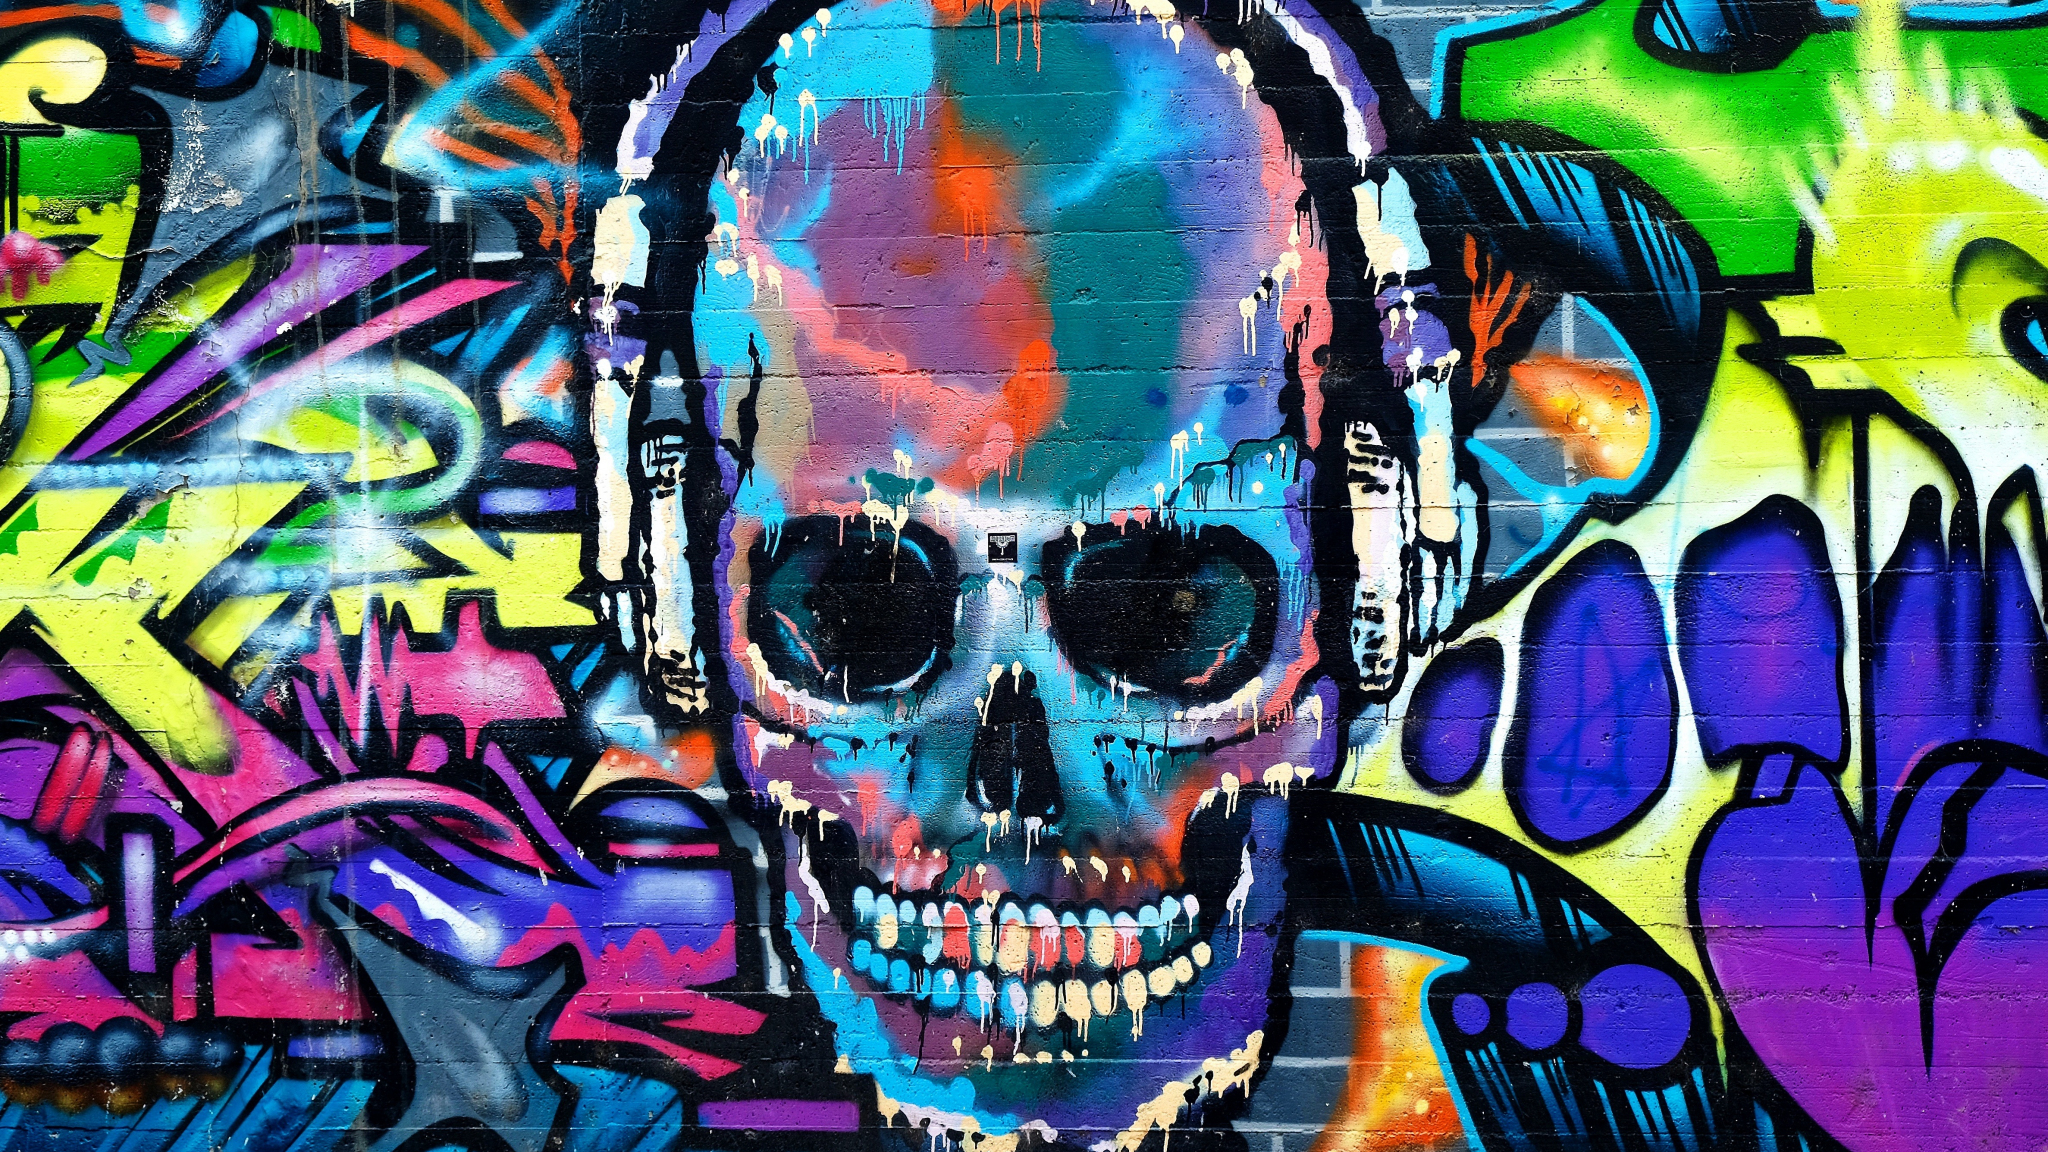 Hd Wallpapers For Laptop 15 6 Inch Screen Download 2048x1152 Wallpaper Graffiti Skull Colorful